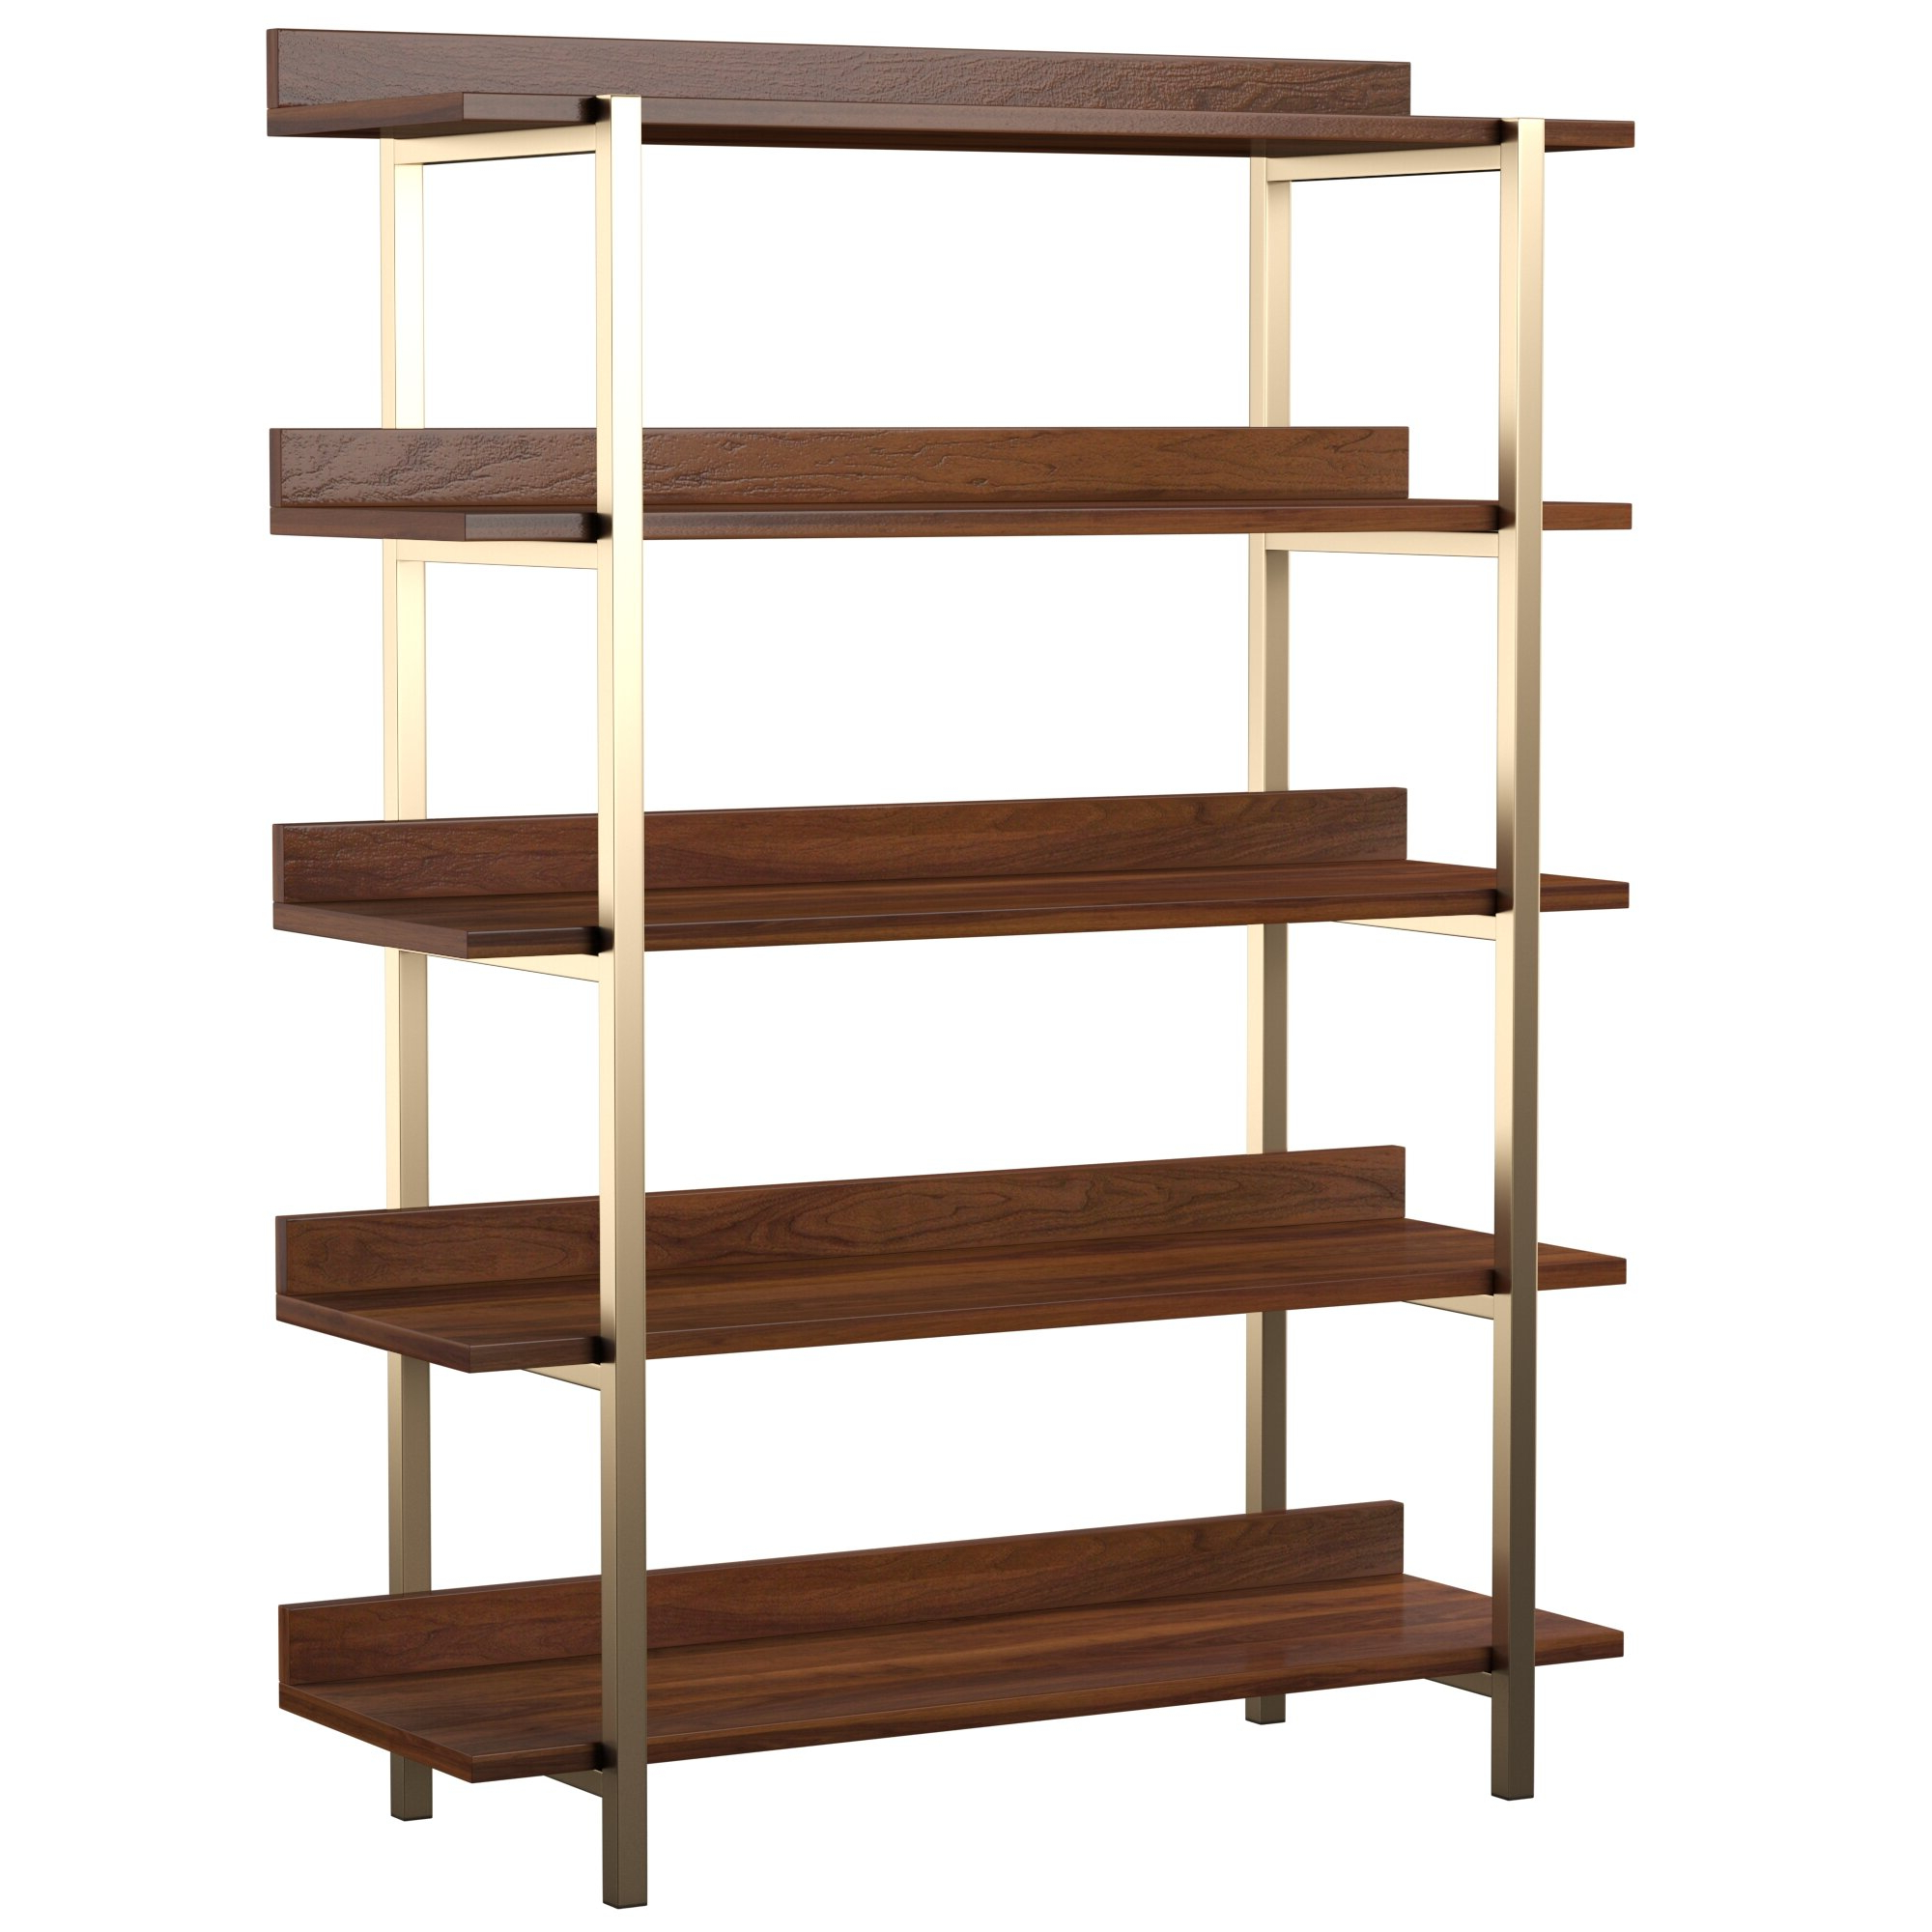 Rhoads Etagere Bookcase Pertaining To Well Known Crowley Standard Bookcases (View 17 of 20)